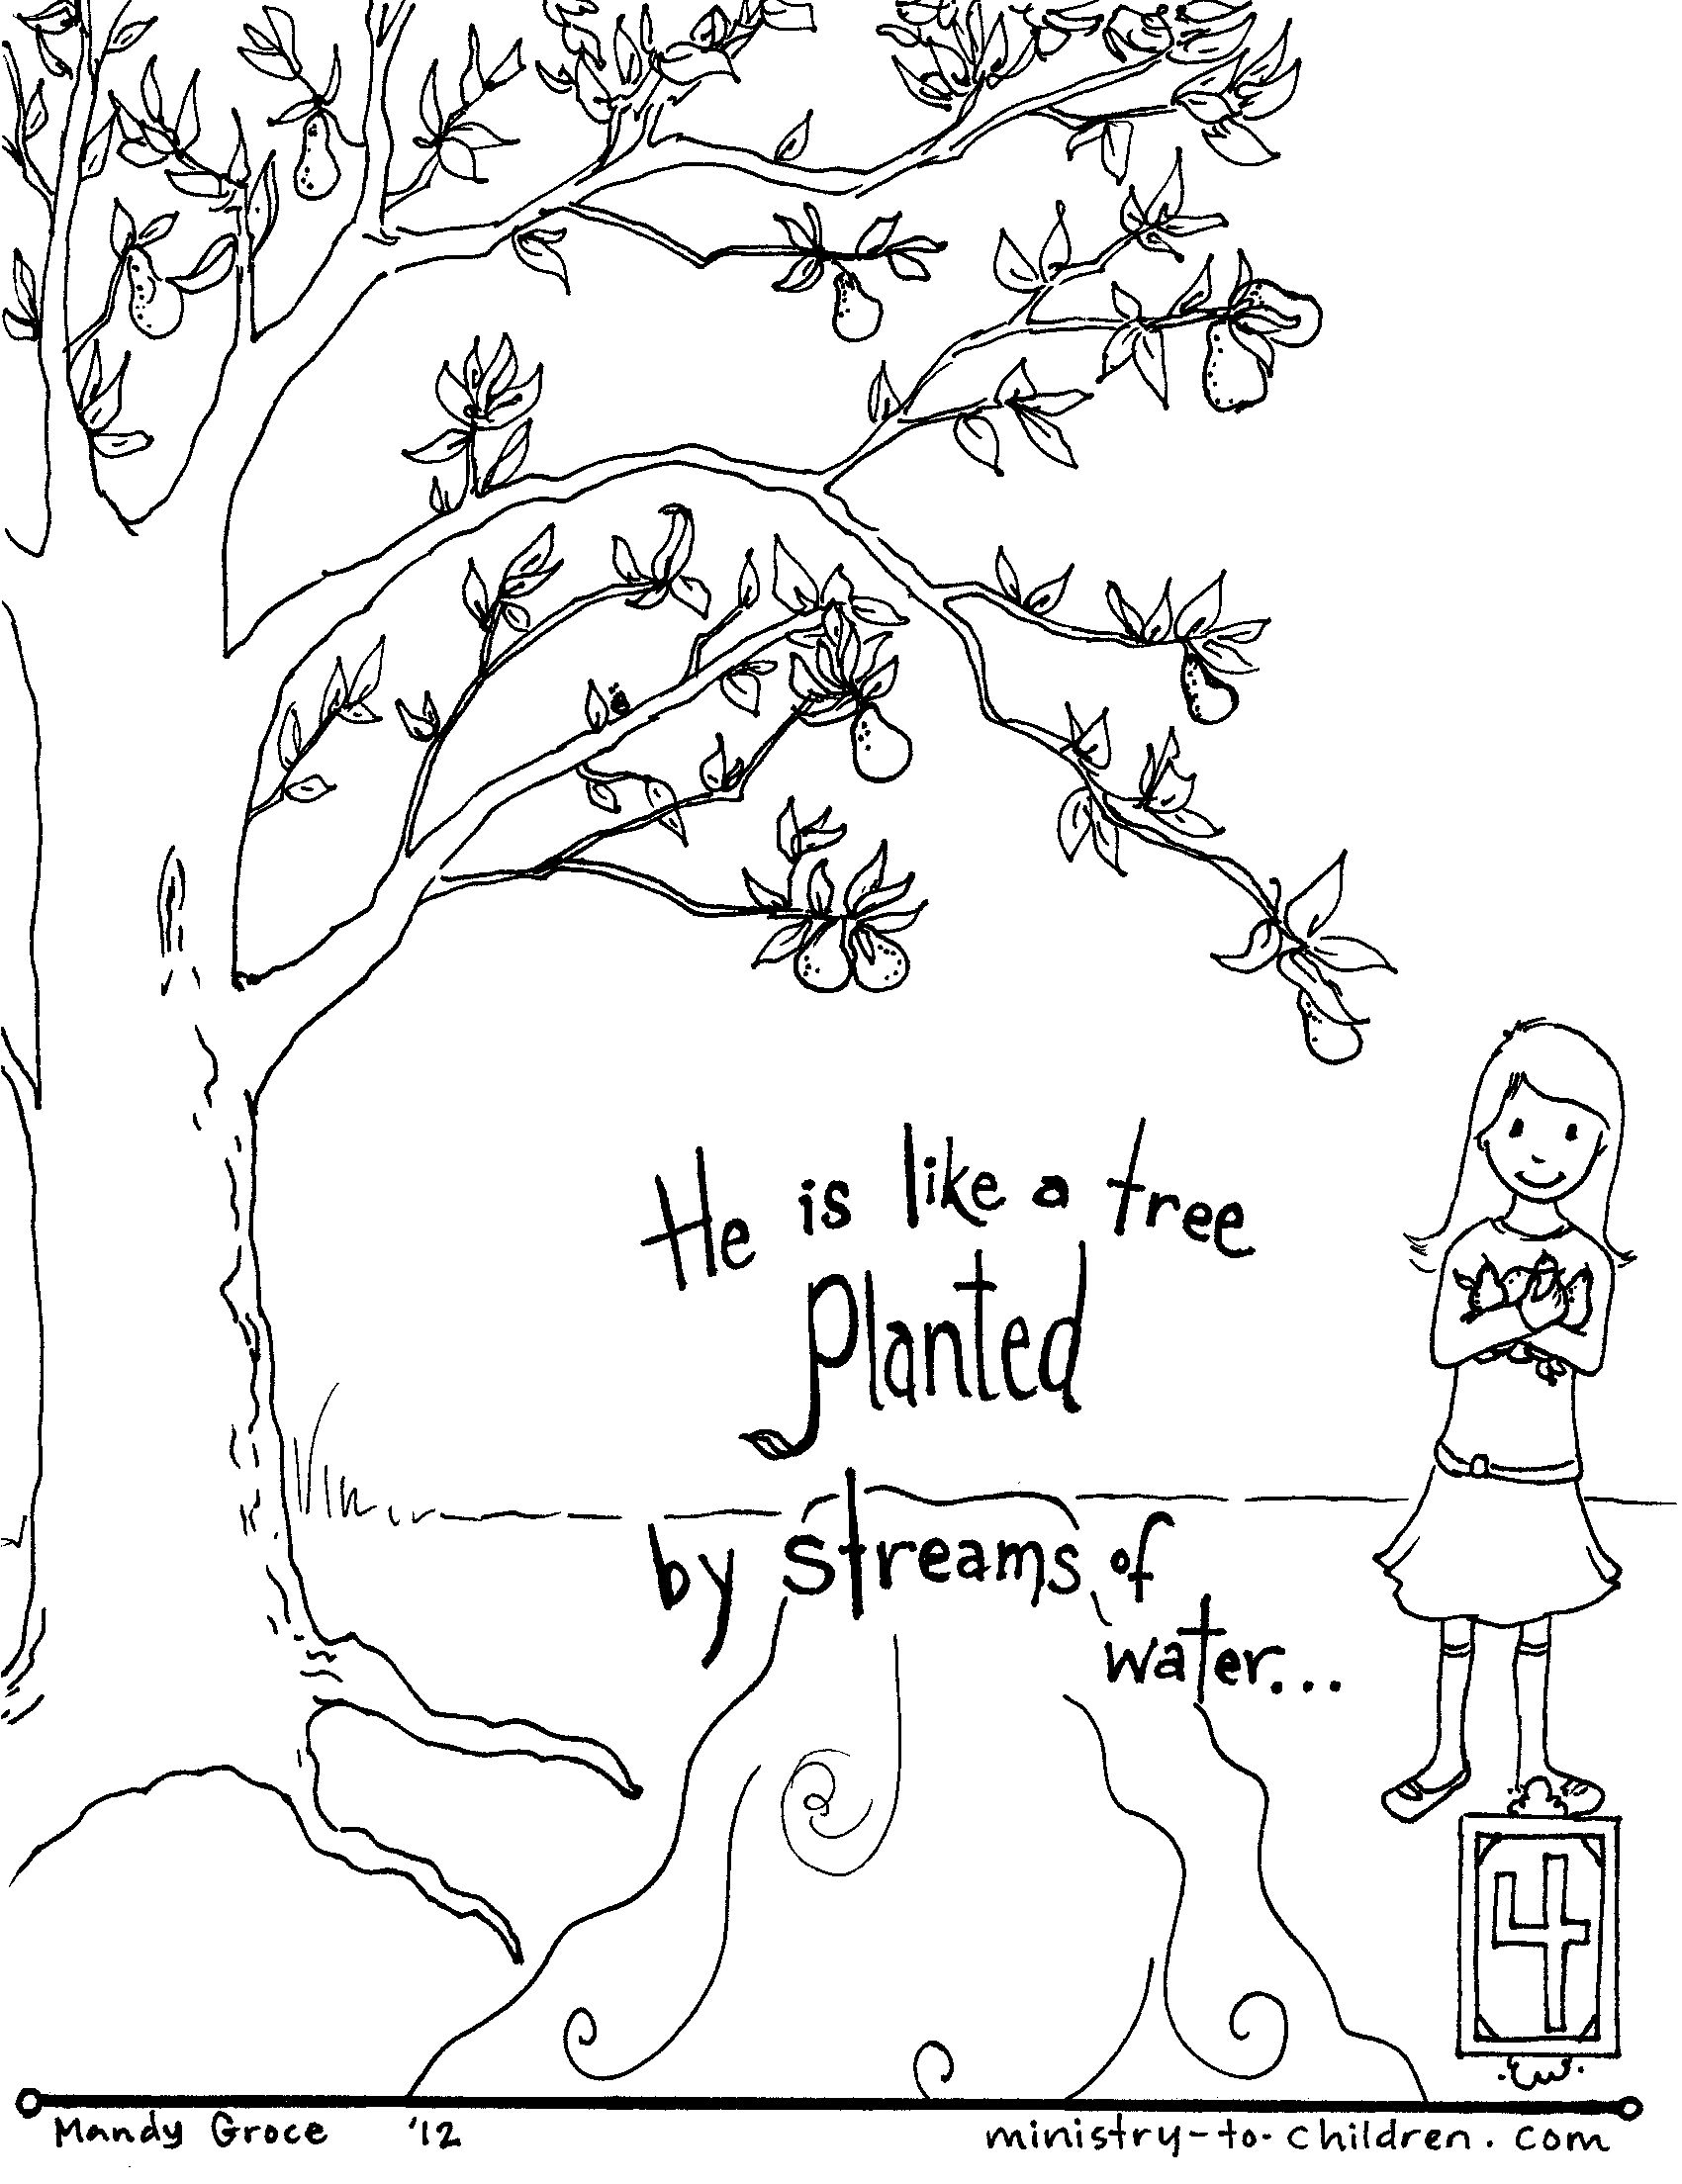 Free clipart 23rd psalm verse 3 coloring pages. Page bible journaling inspiration